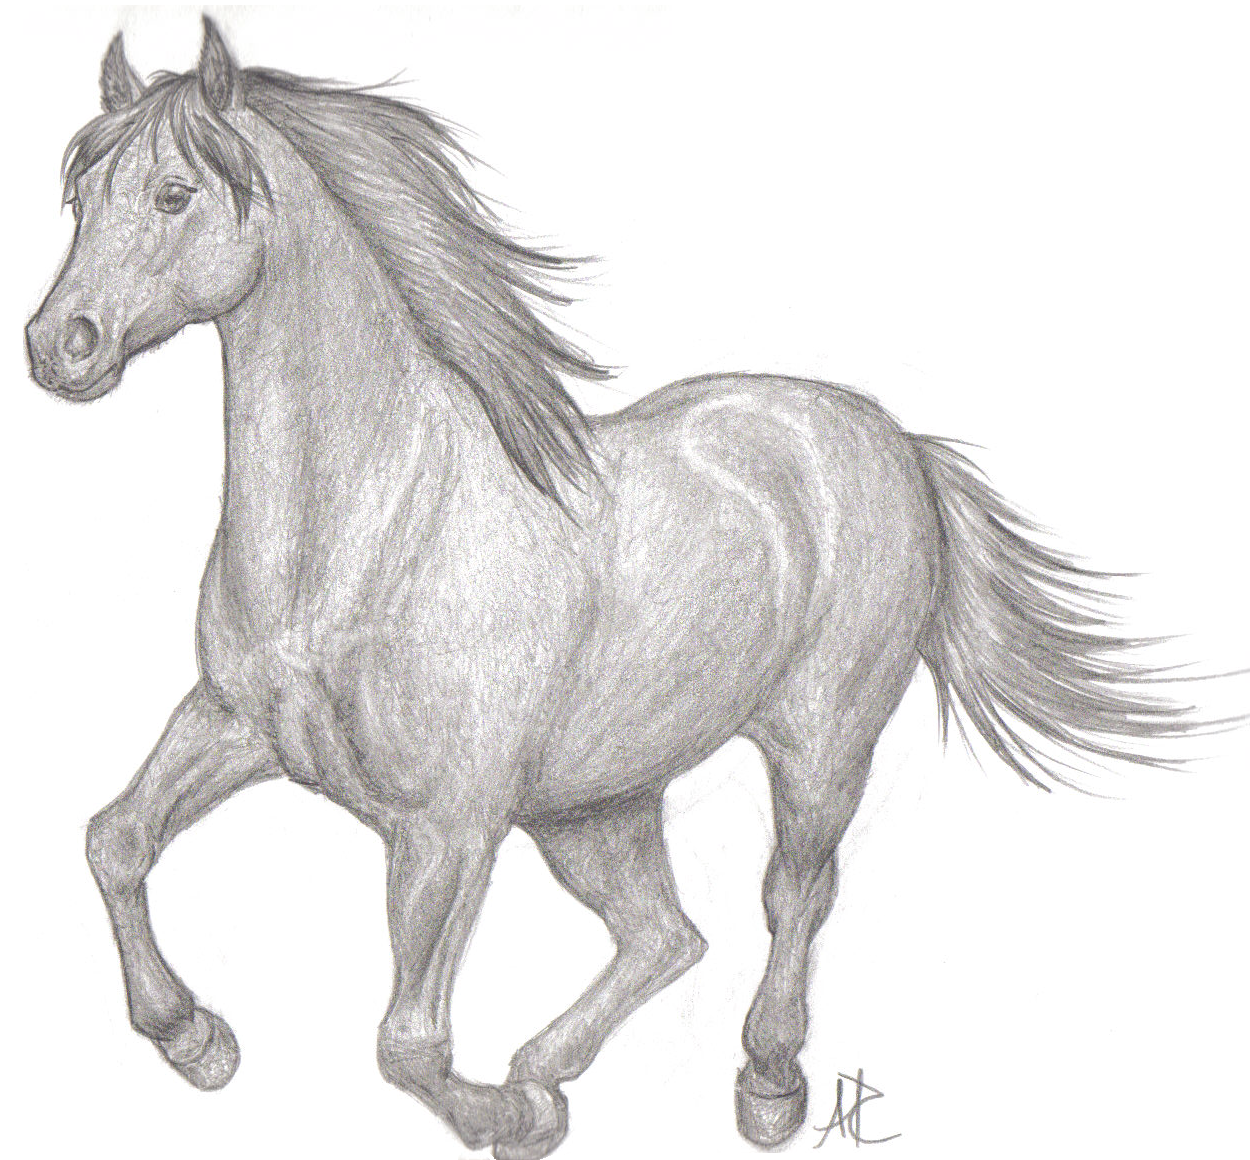 Running horse drawing easy - photo#16